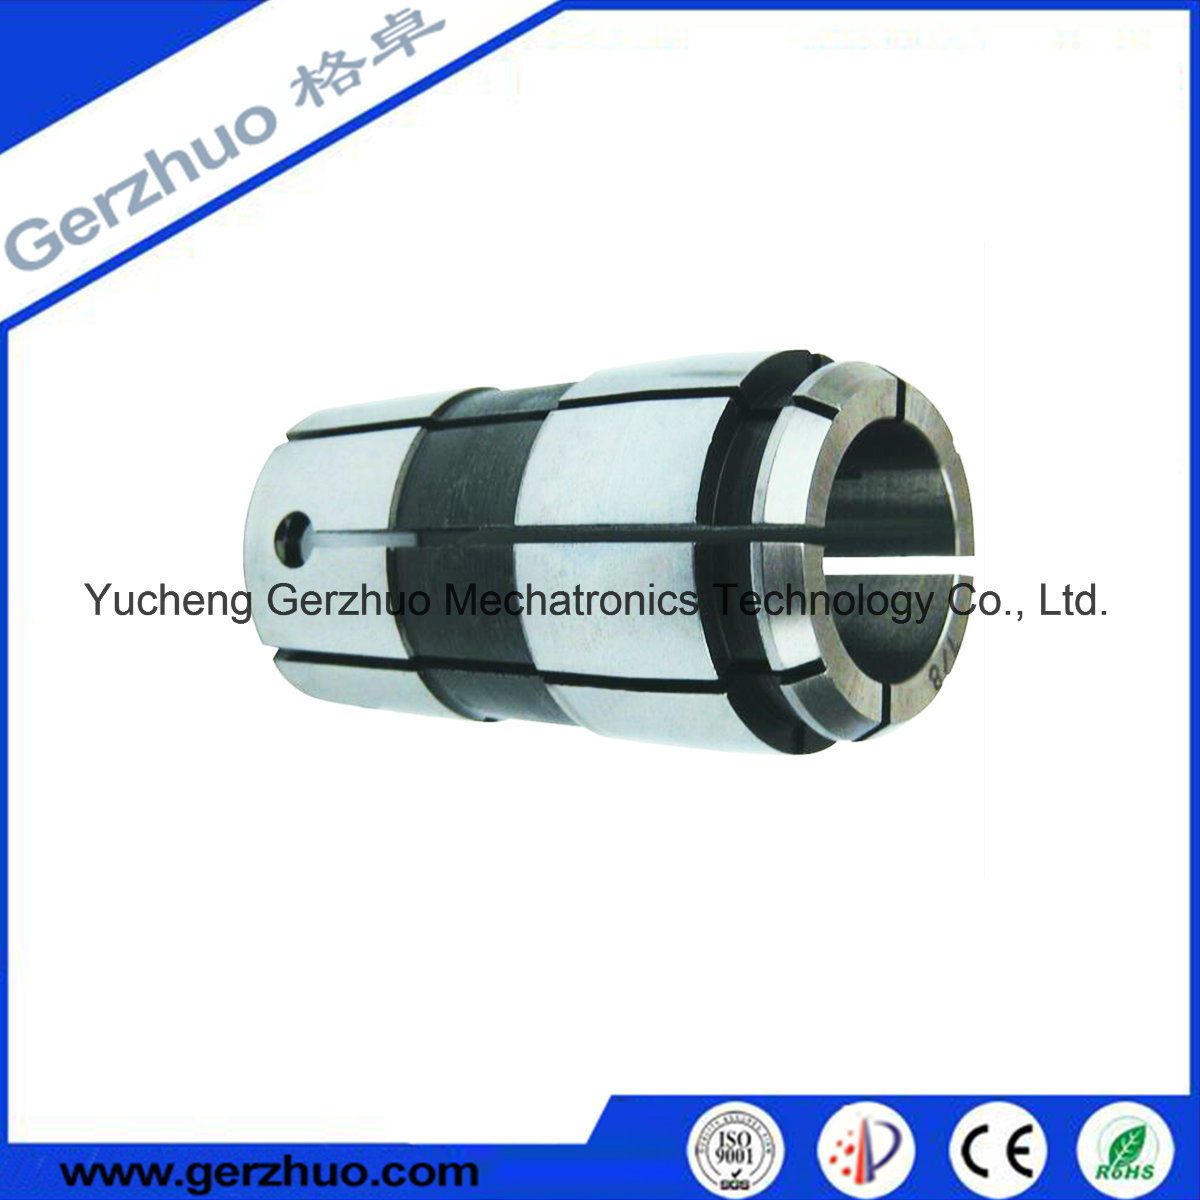 0.015mm accuracy TG CNC cutting tool collet